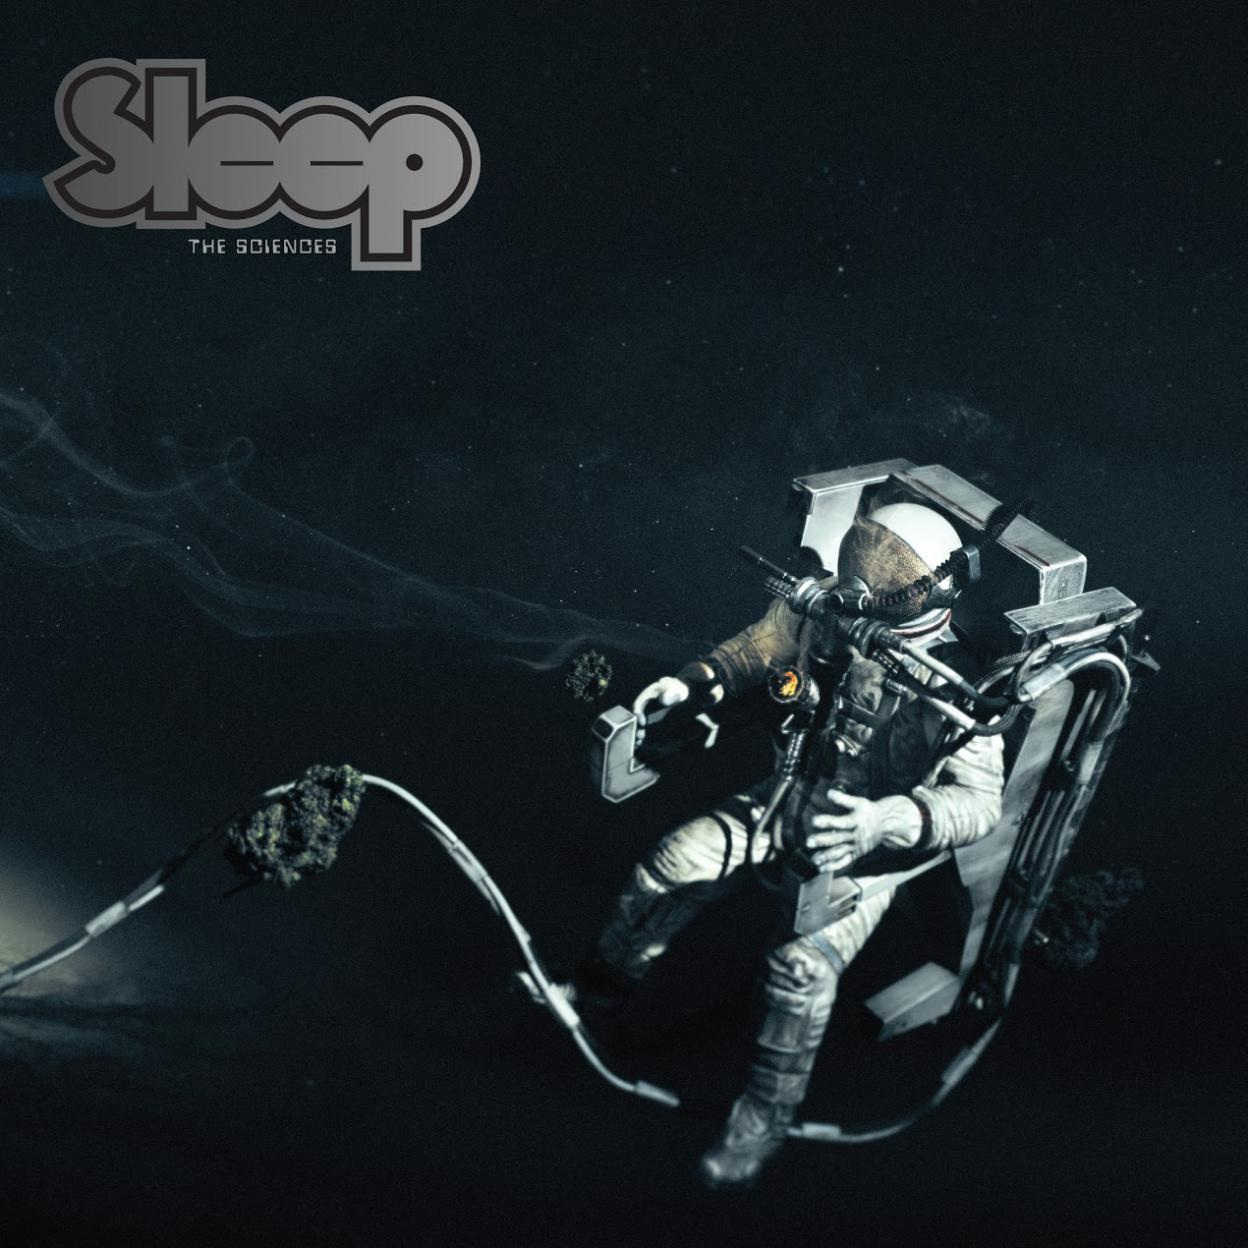 Sleep will be performing live June 7 at the Warfield in San Francisco.